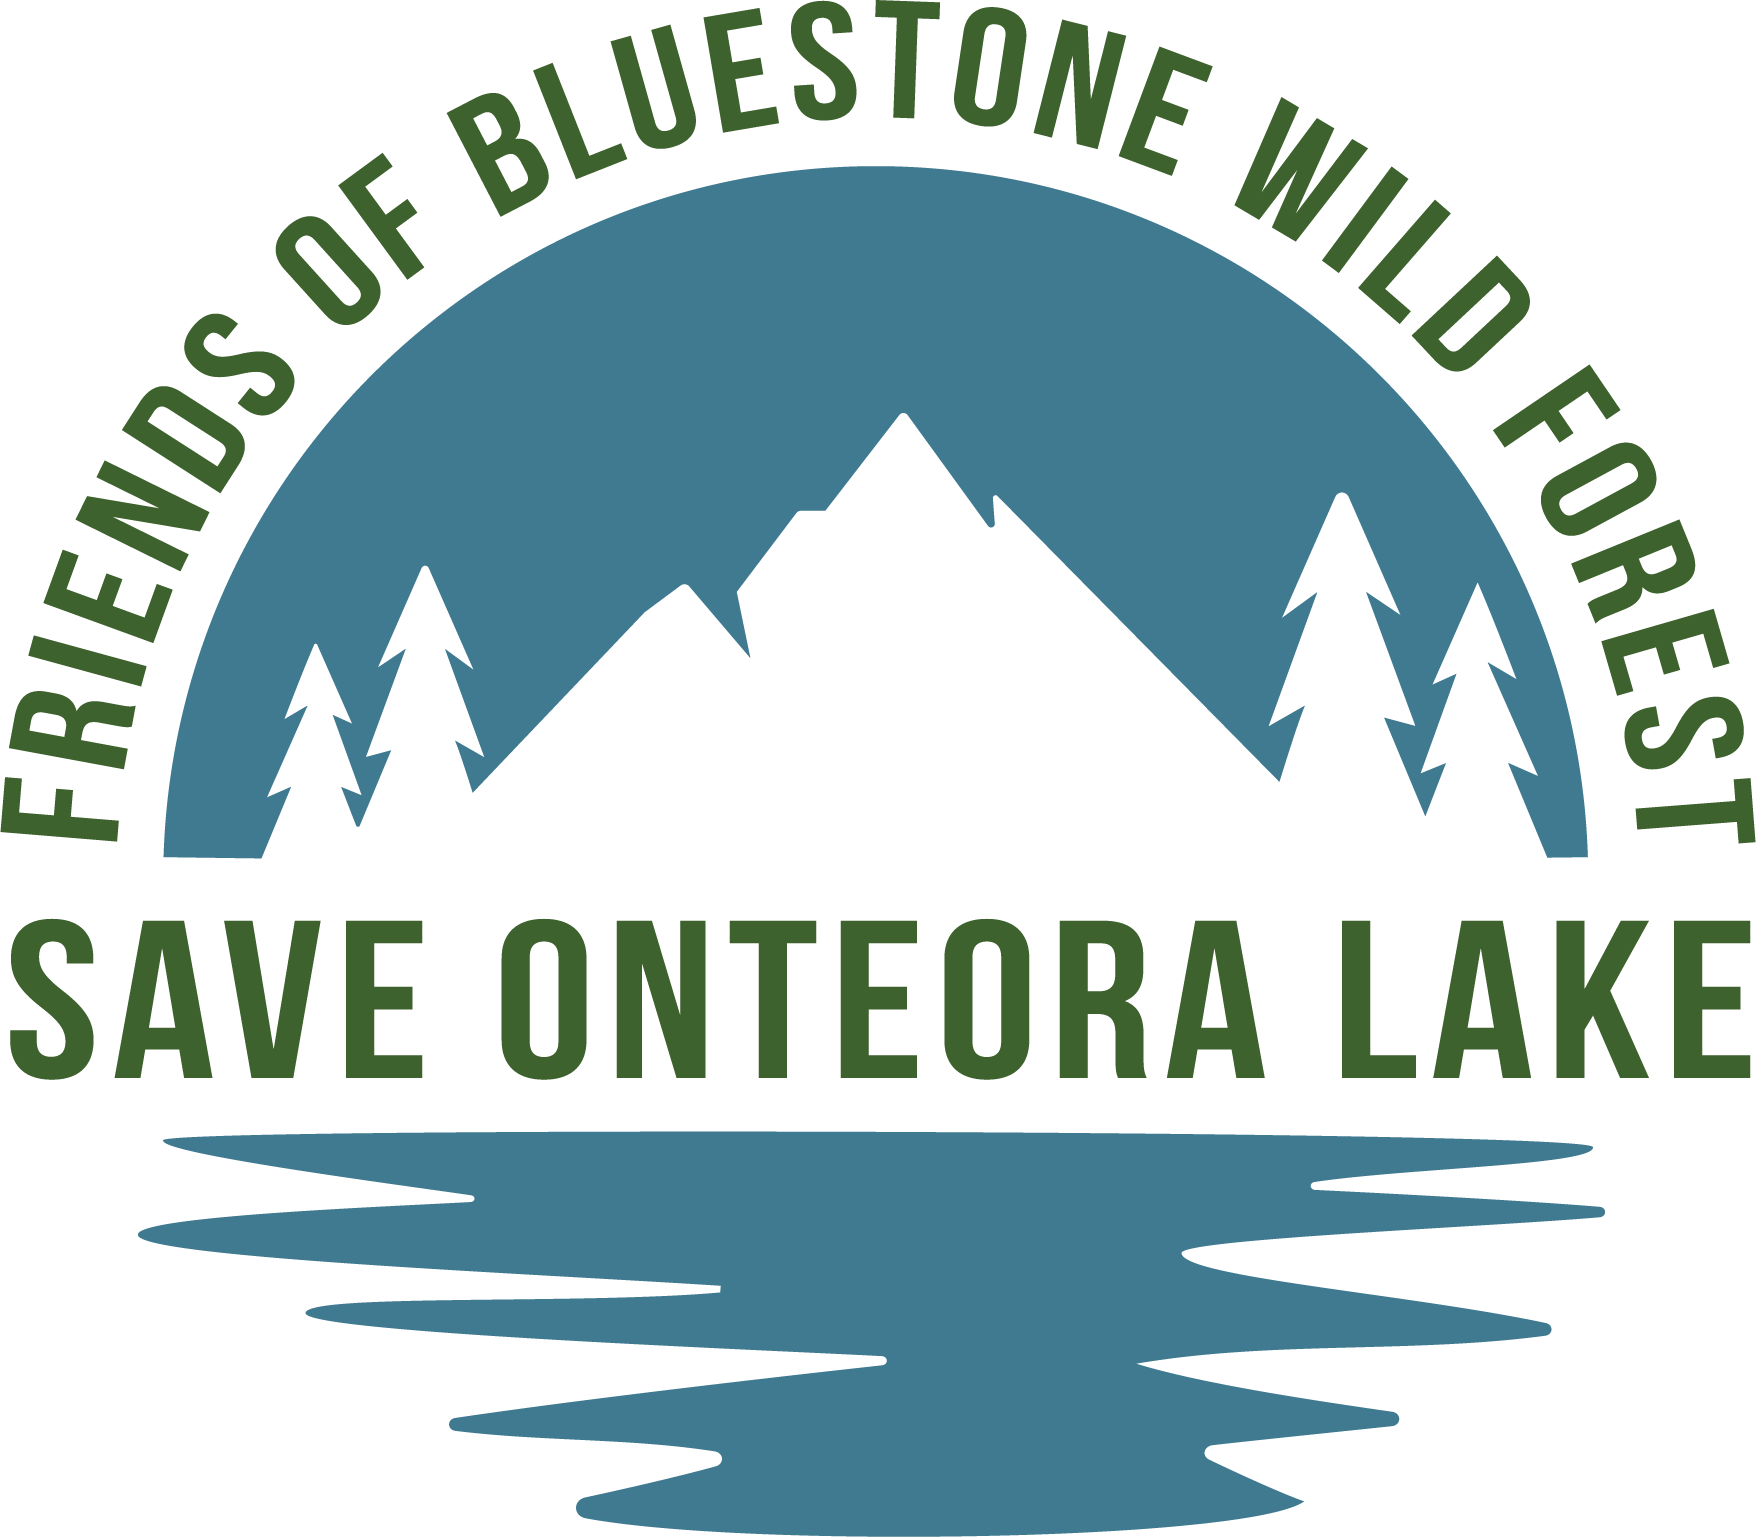 Save Onteora Lake